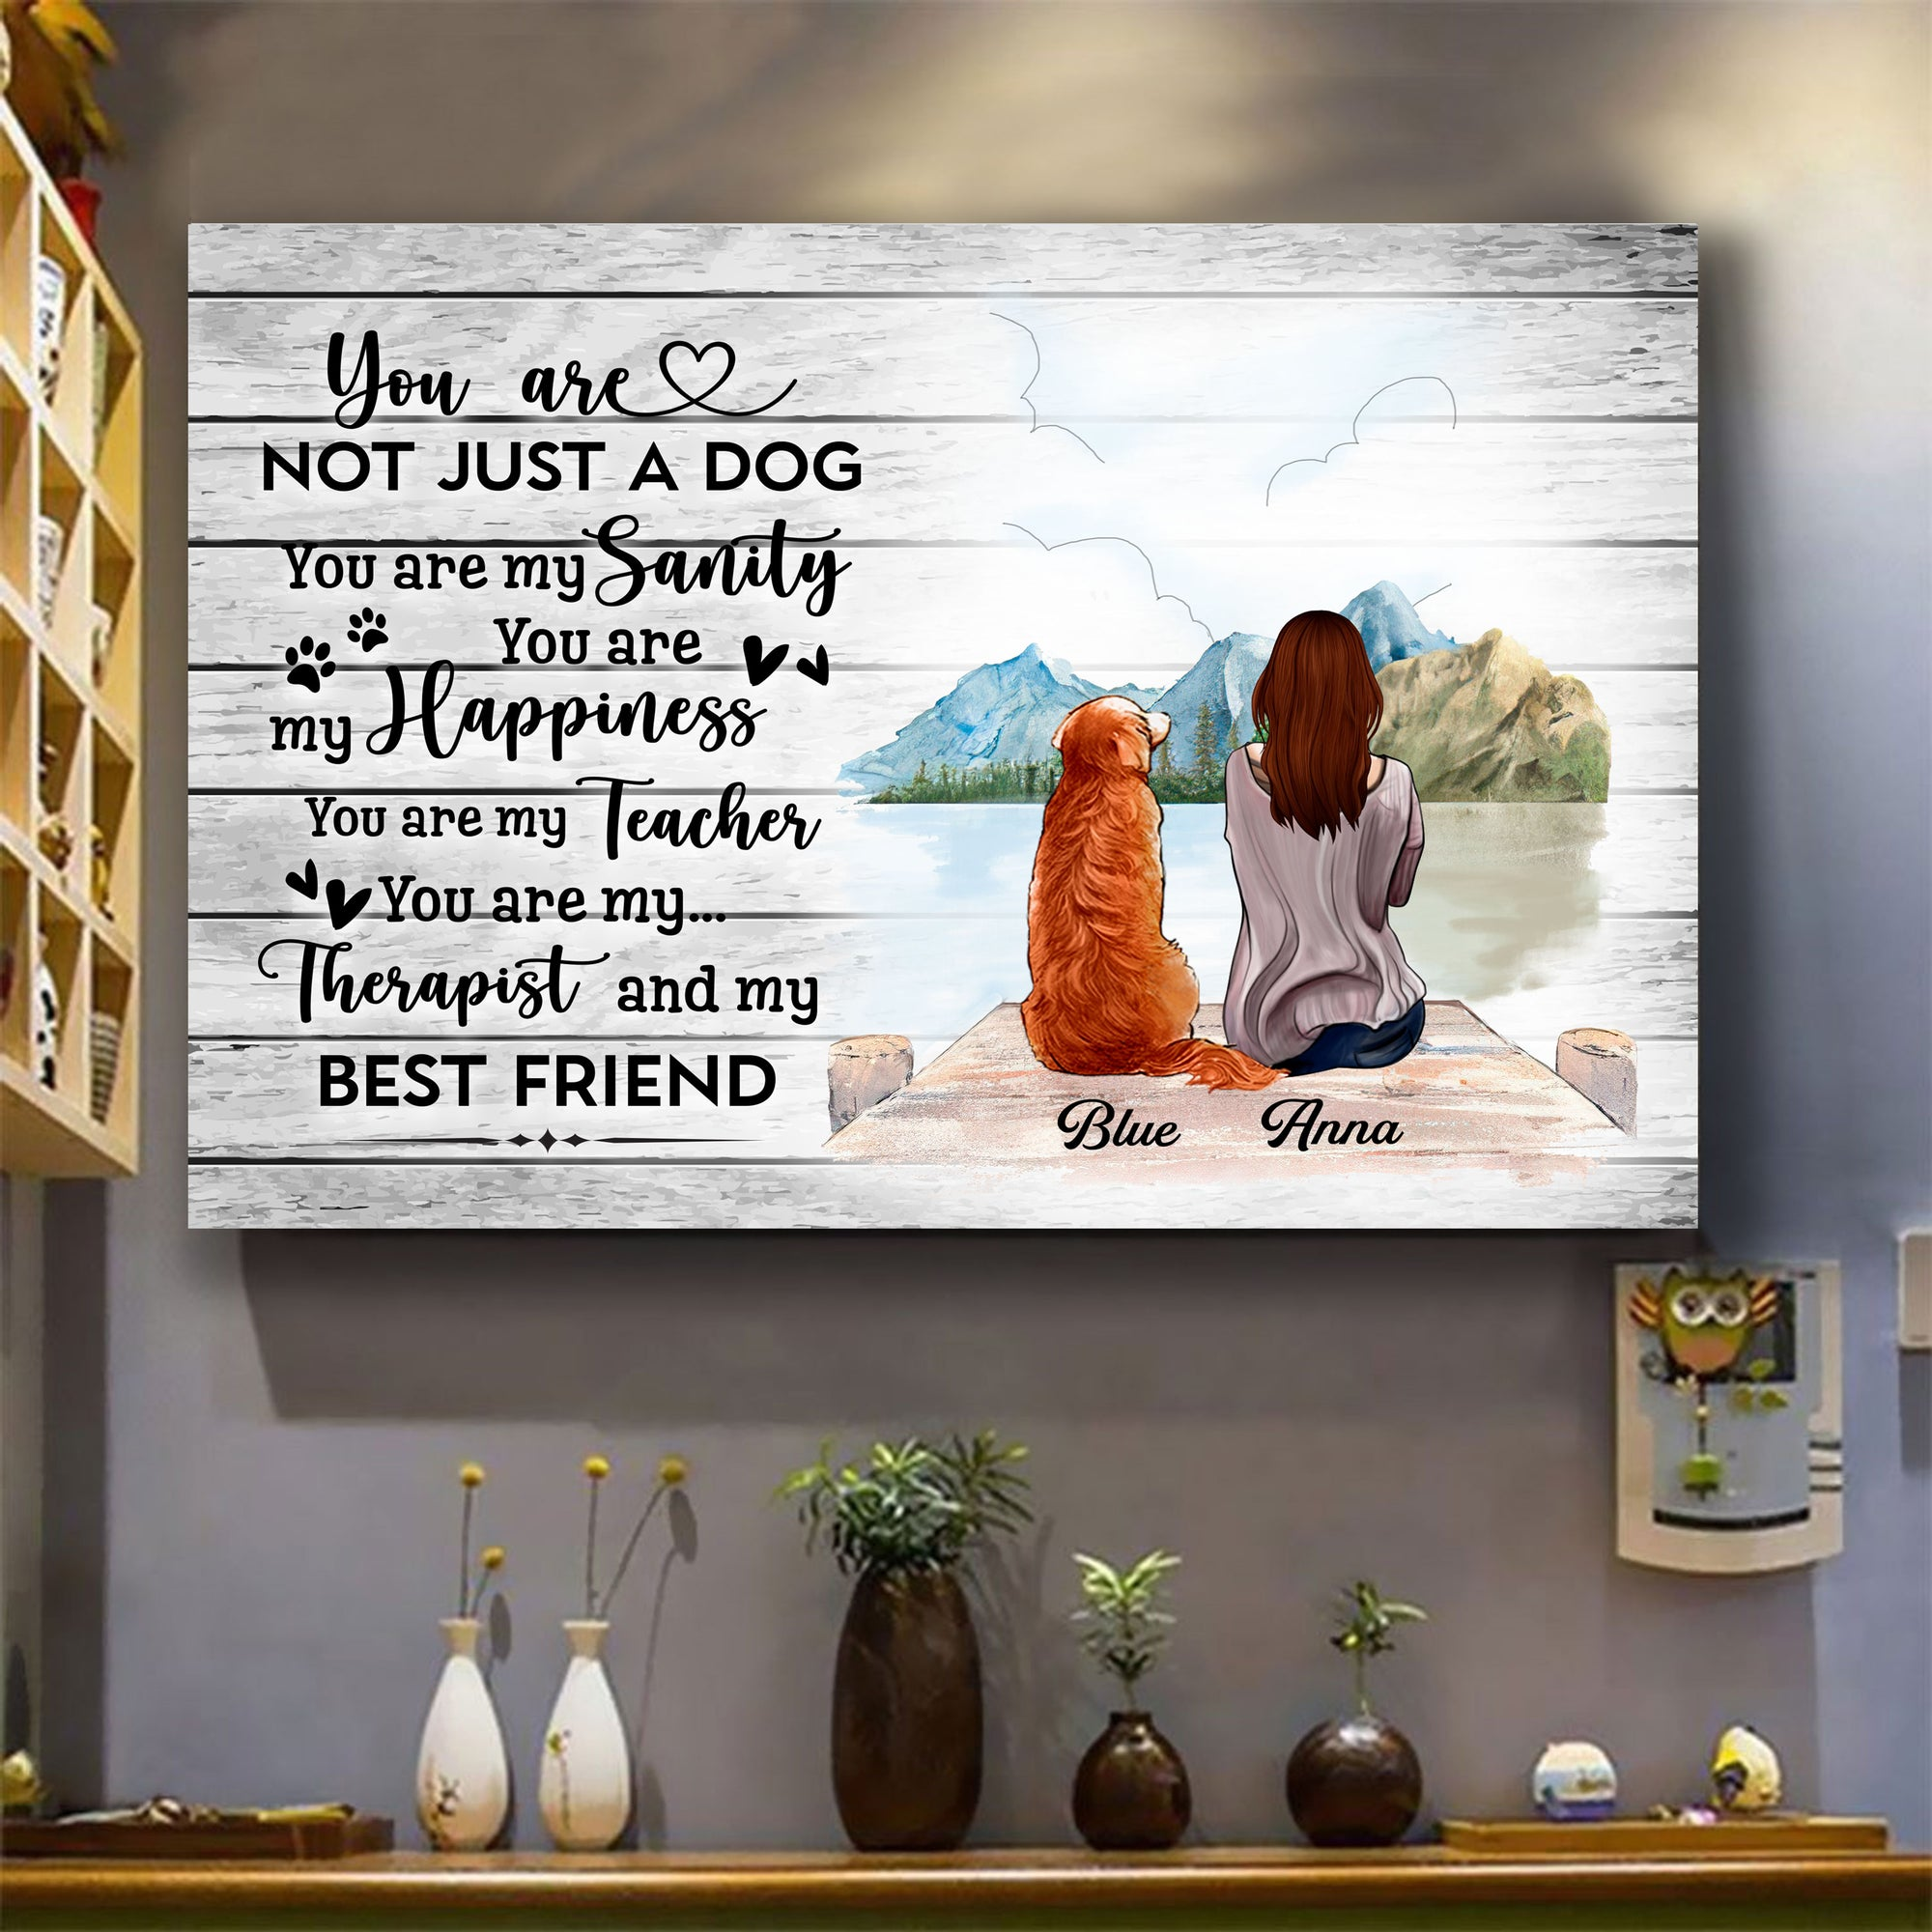 Personalized Canvas & Poster for Dog Lovers - You Are Not Just Dogs